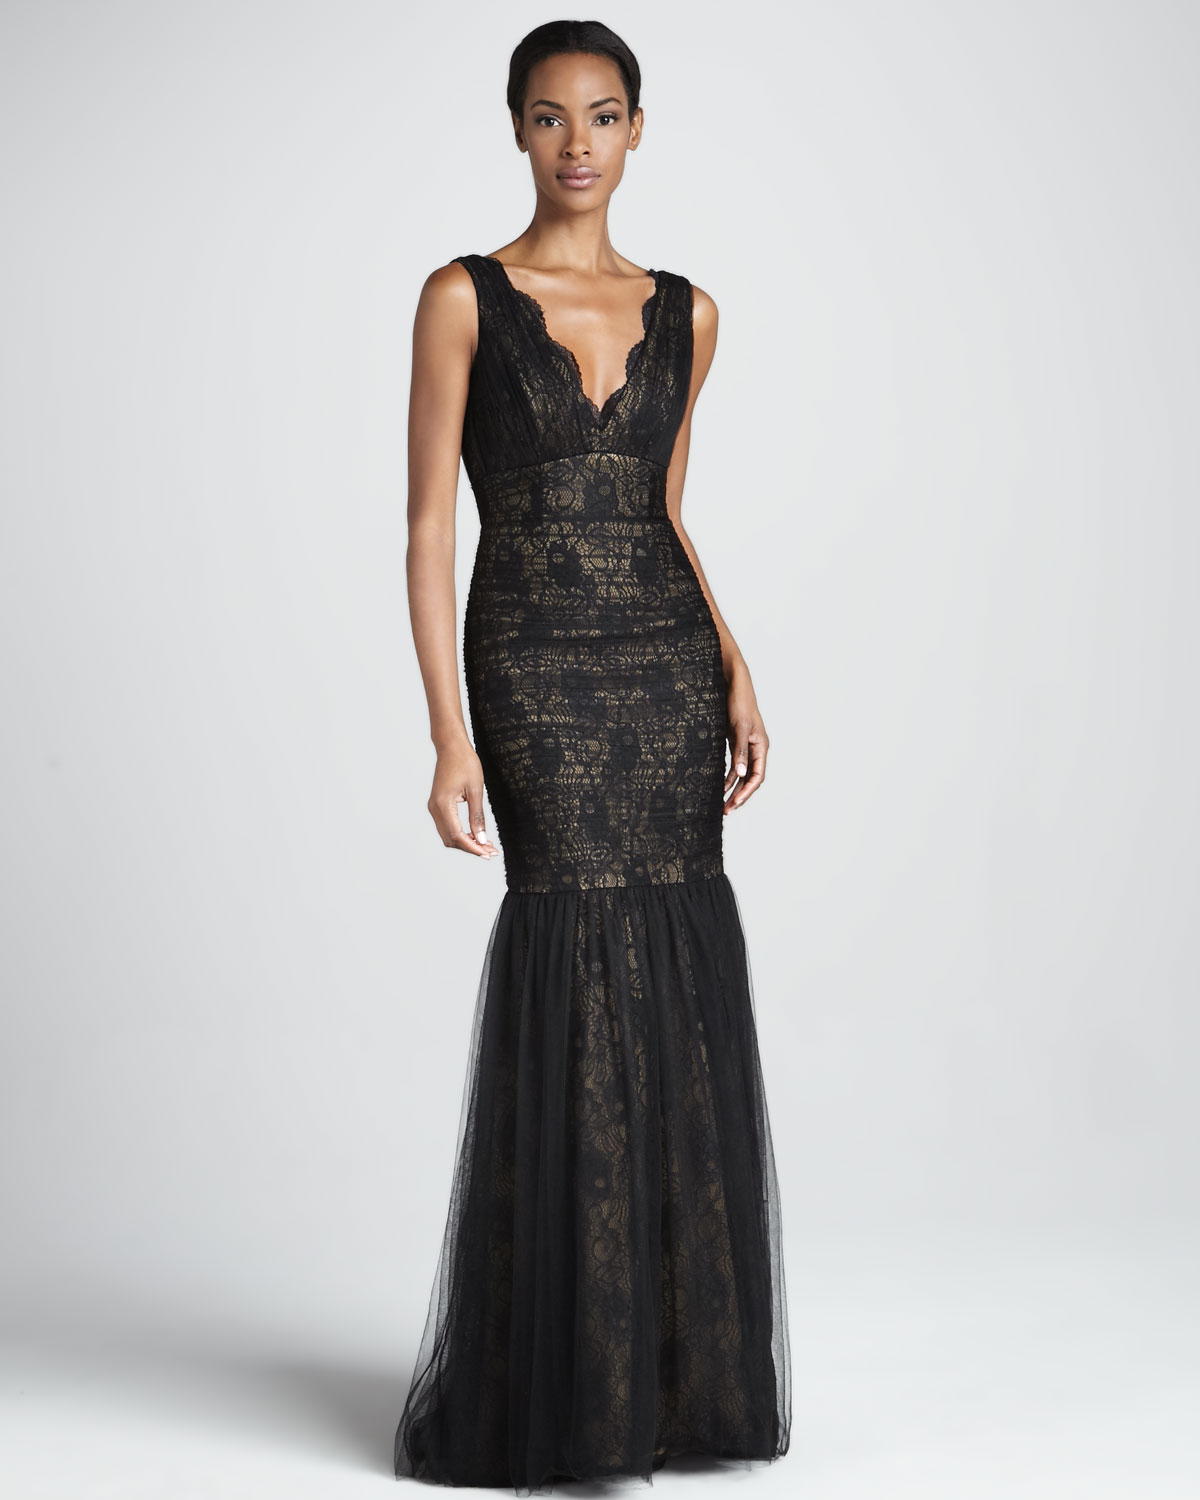 Lyst - Ml monique lhuillier Sleeveless Lace Tulle Gown in Black